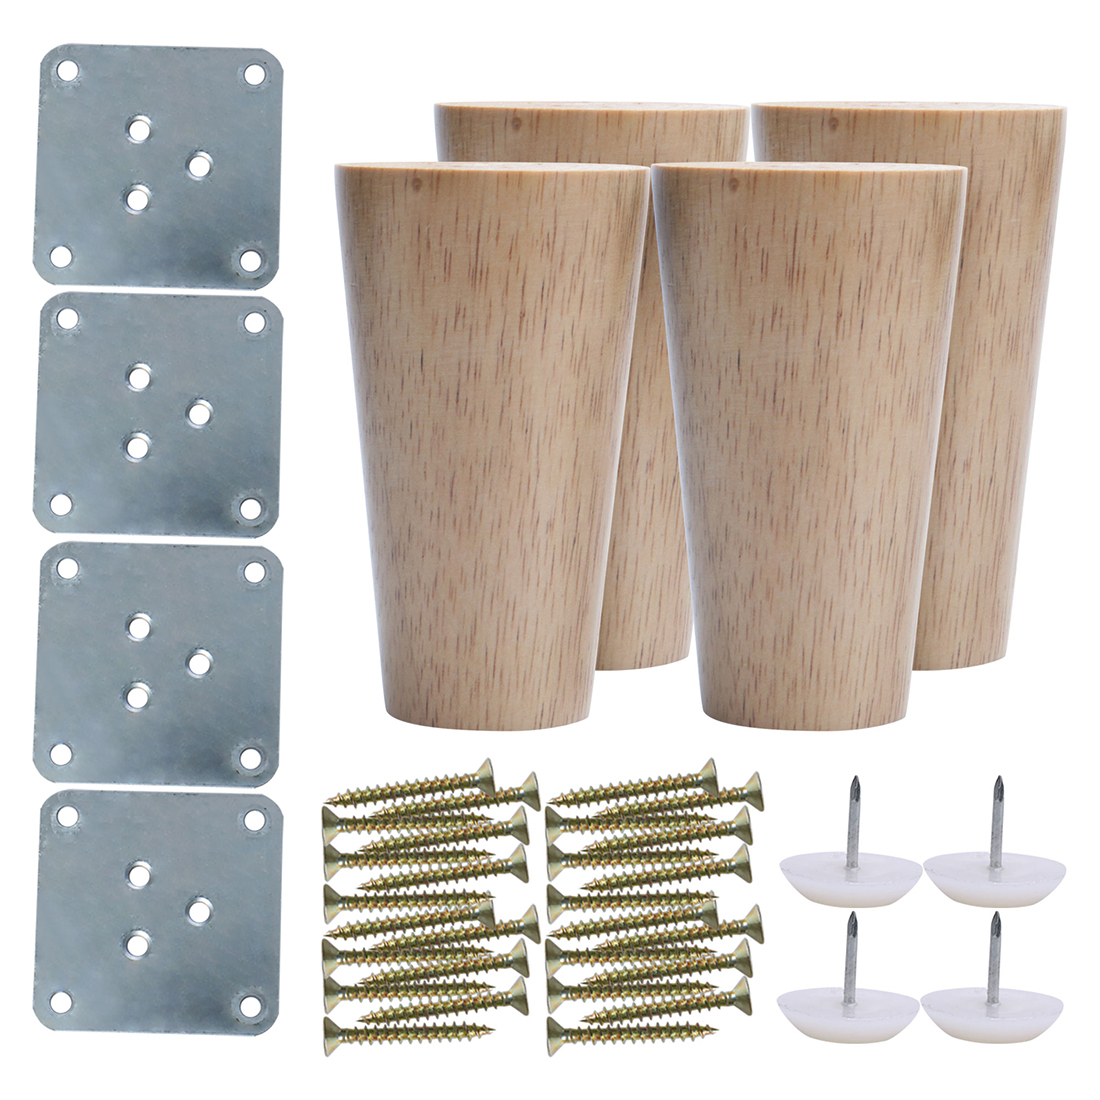 "4"" Wood Furniture Leg Chair Cabinet Feet Replacement Height Adjuster 4pcs"